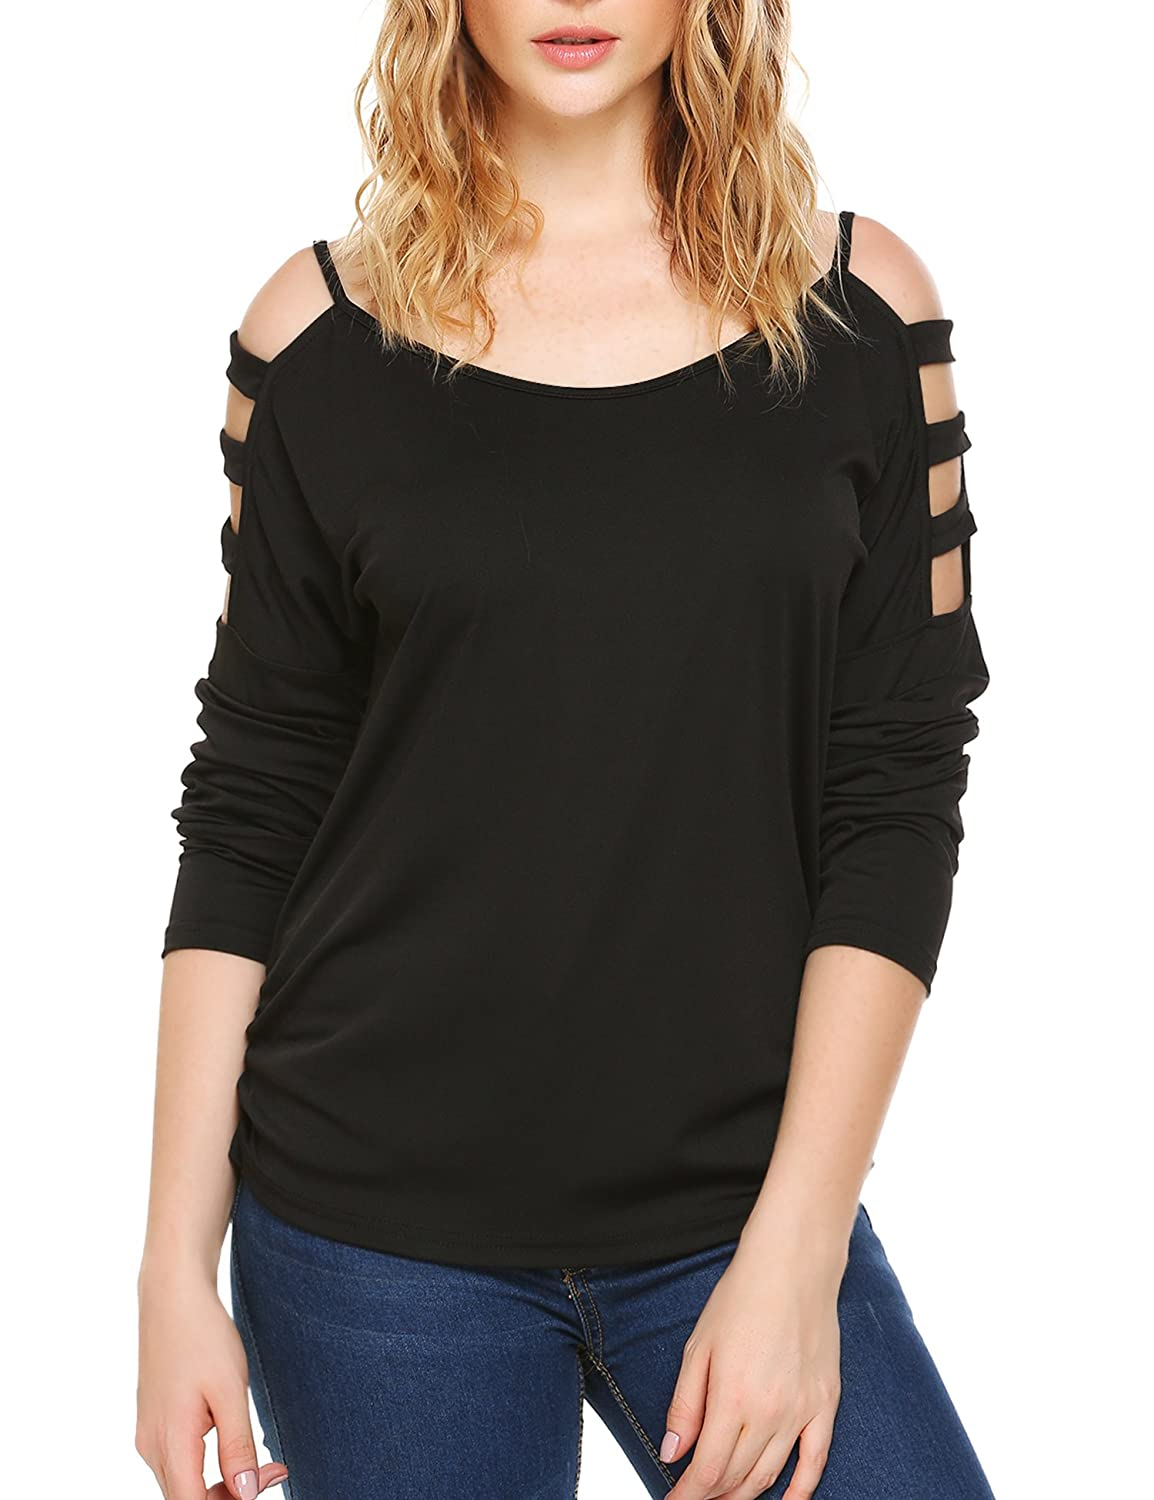 Women's Casual Loose Hollowed Out Shoulder Long Sleeve Tops Shirts